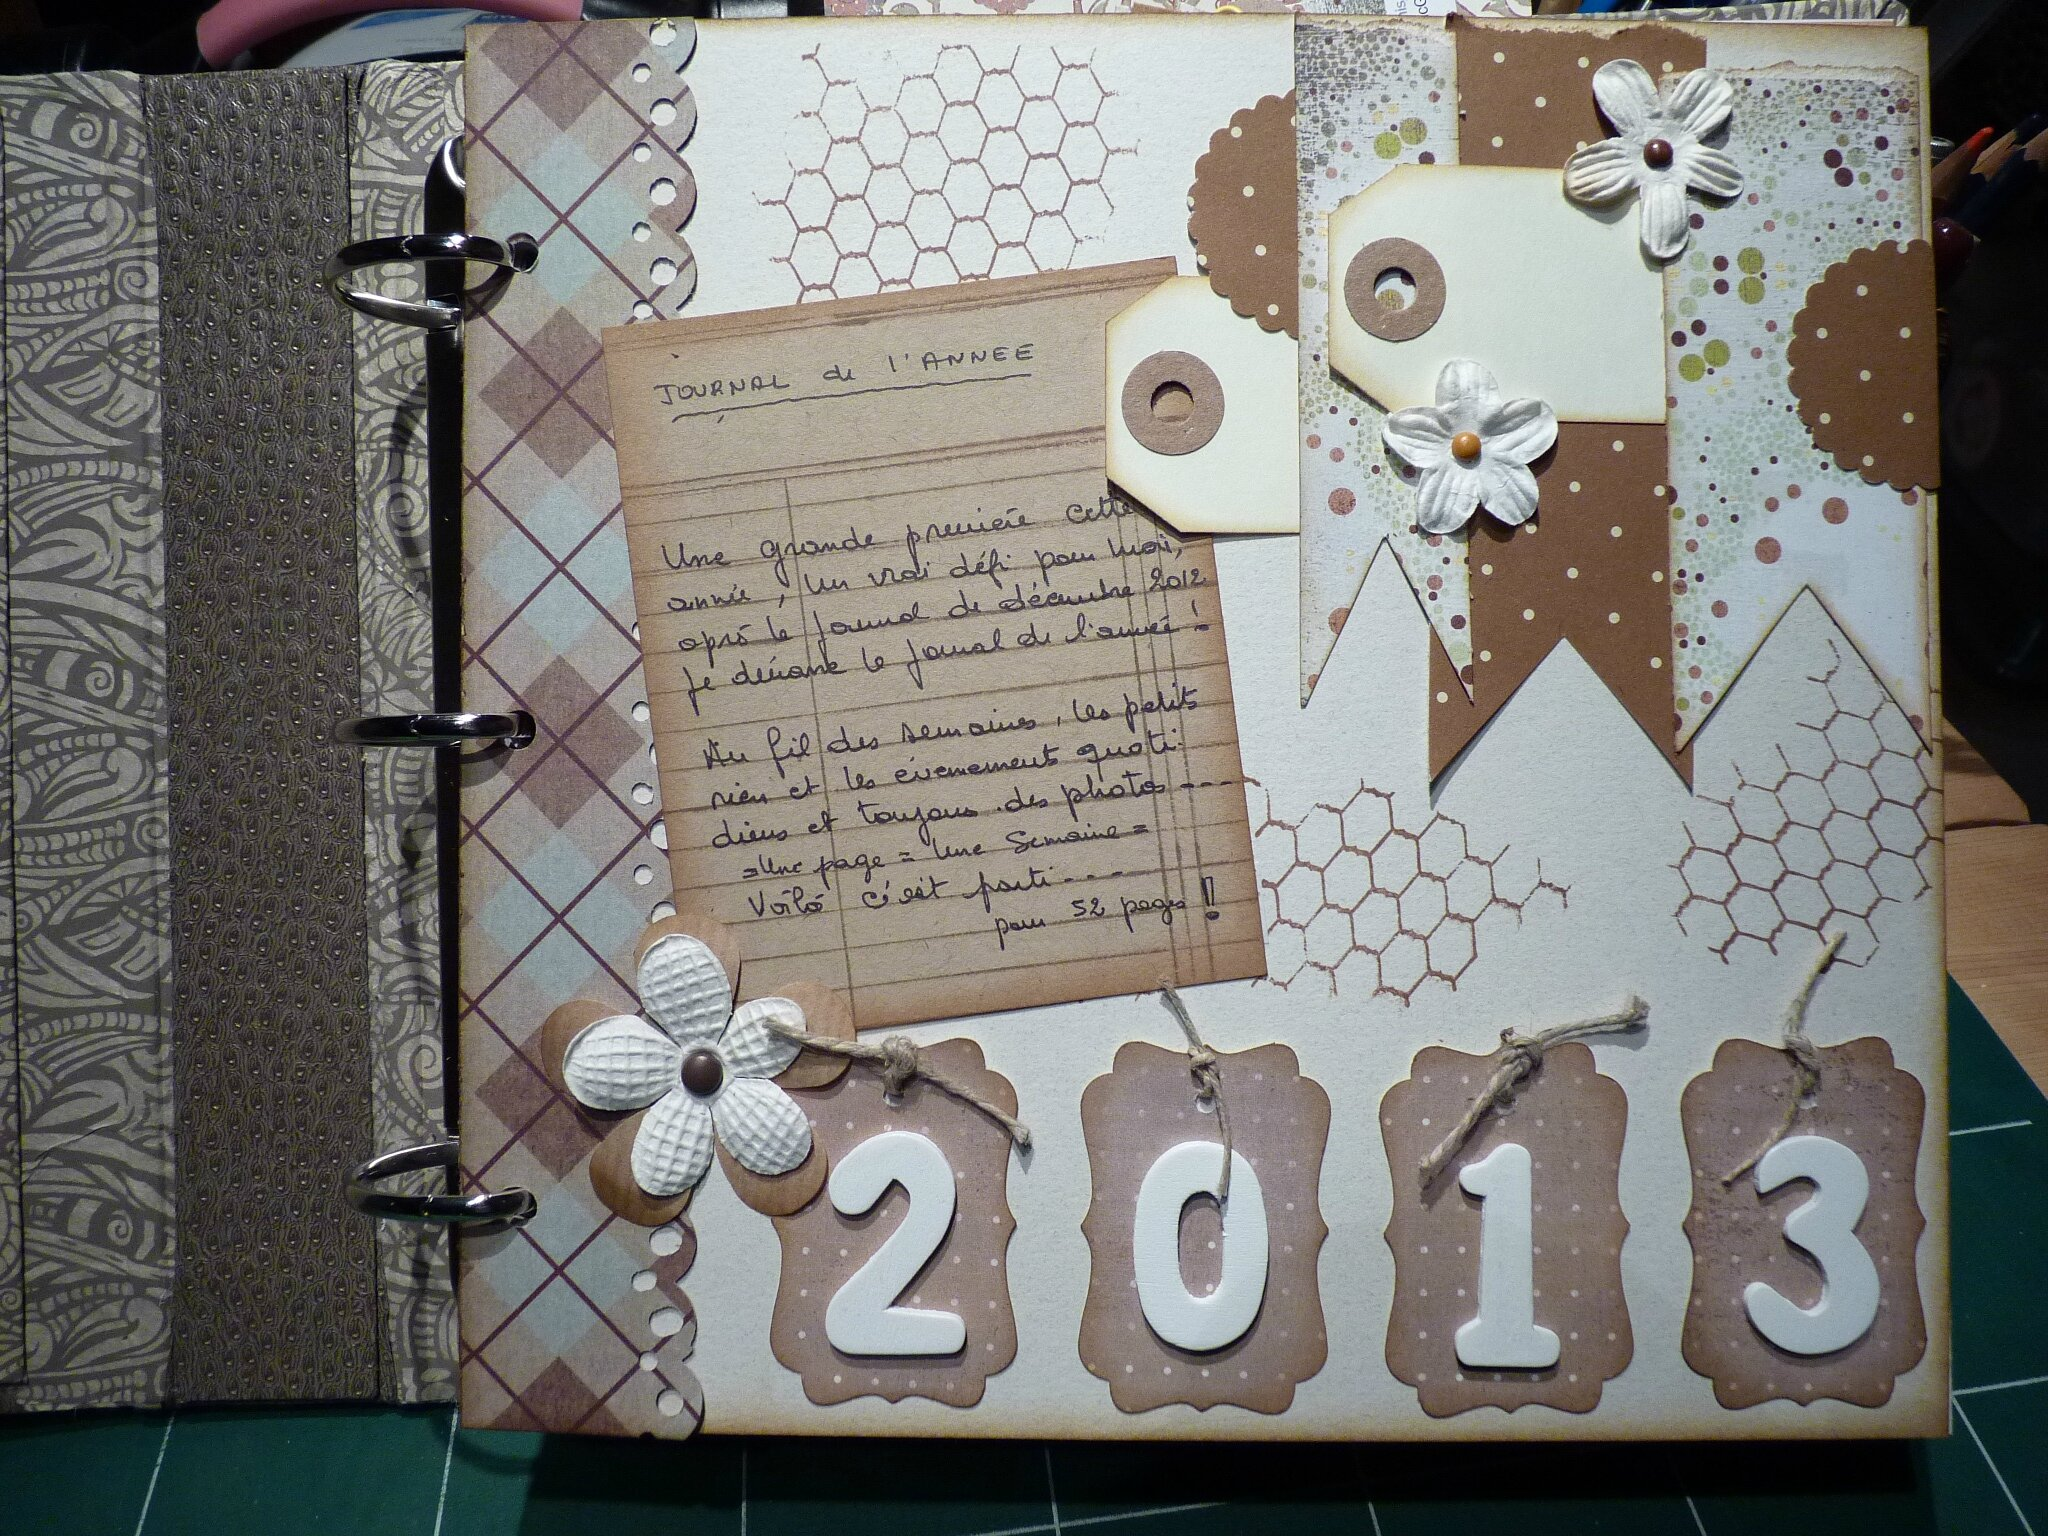 52 semaines : 52 pages pour 2013 !